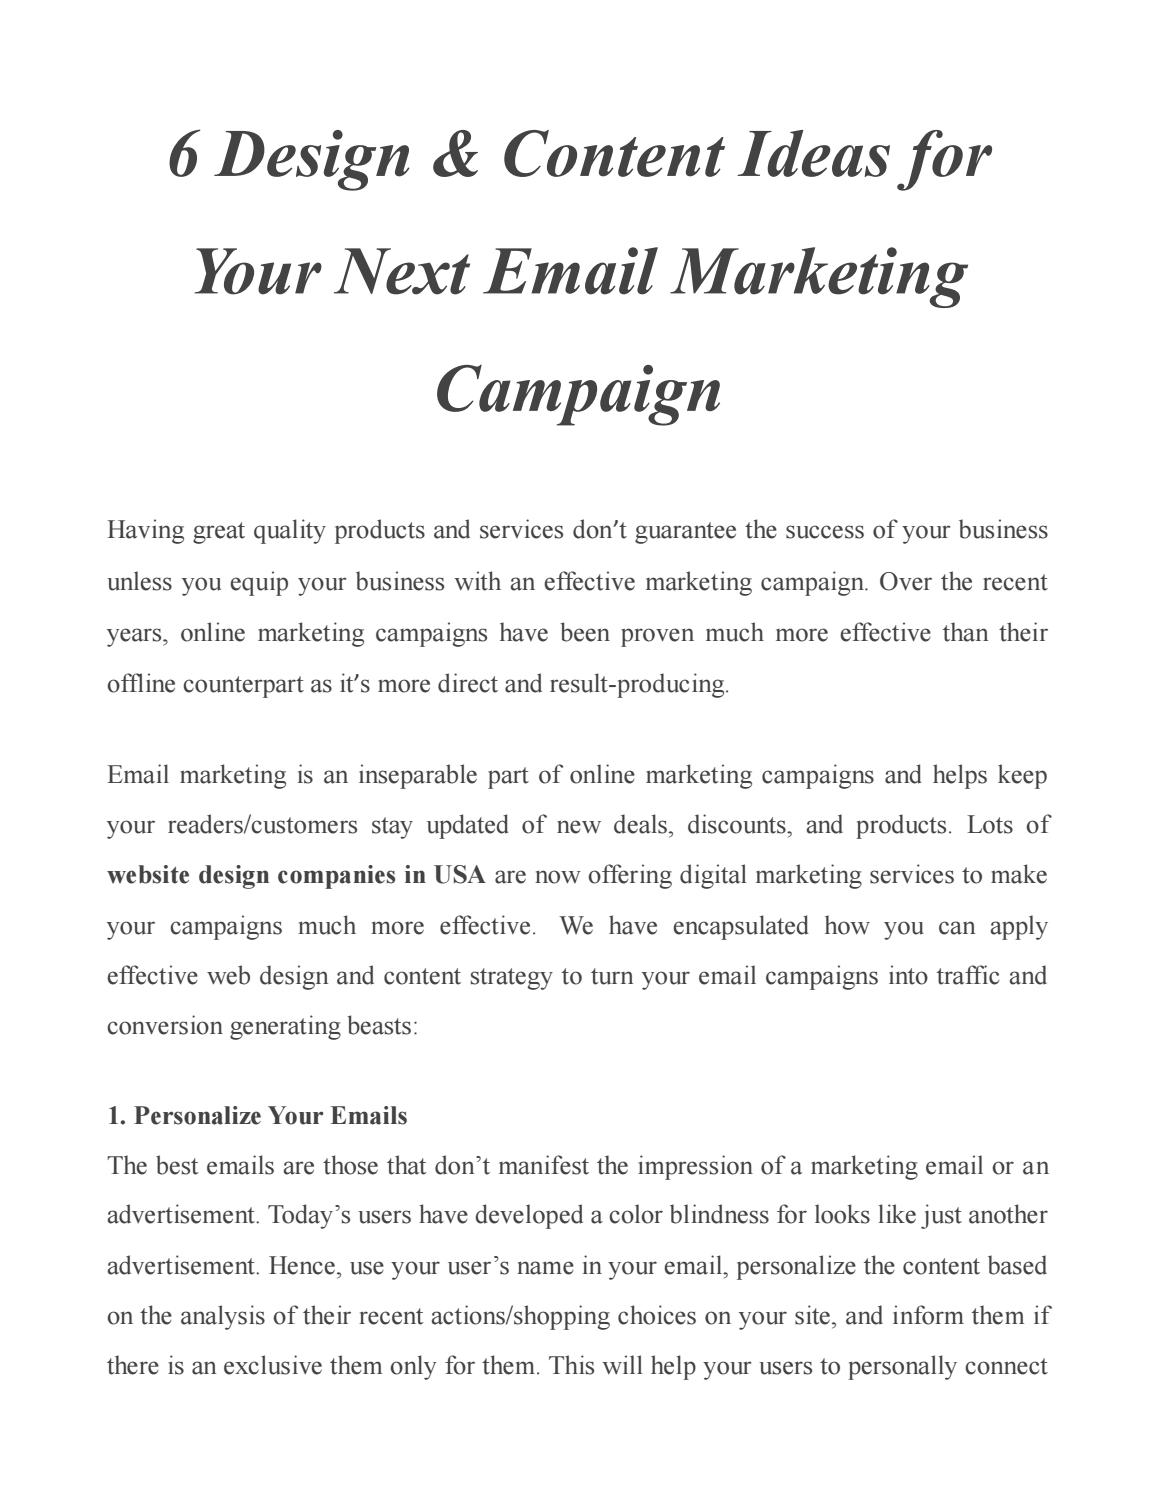 6 design & content ideas for your next email marketing campaign by